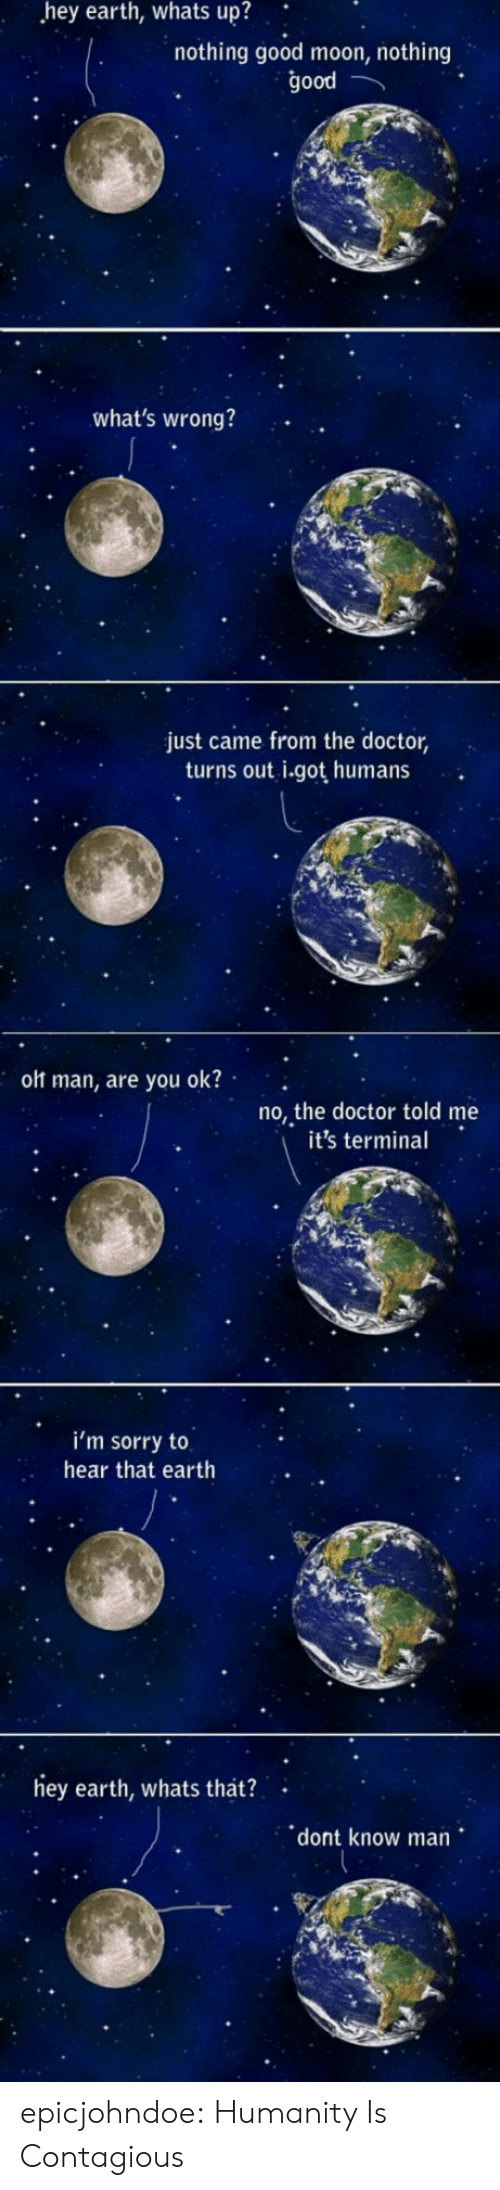 Contagious: hey  earth,  whats  up?  nothing good moon, nothing  good  what's wrong?  just came from the doctor,  turns out i.got humans  olt man, are you ok?  no, the doctor told me  it's termina  i'm sorry to  hear that earth  ey earth, whats that?  dont know man epicjohndoe:  Humanity Is Contagious